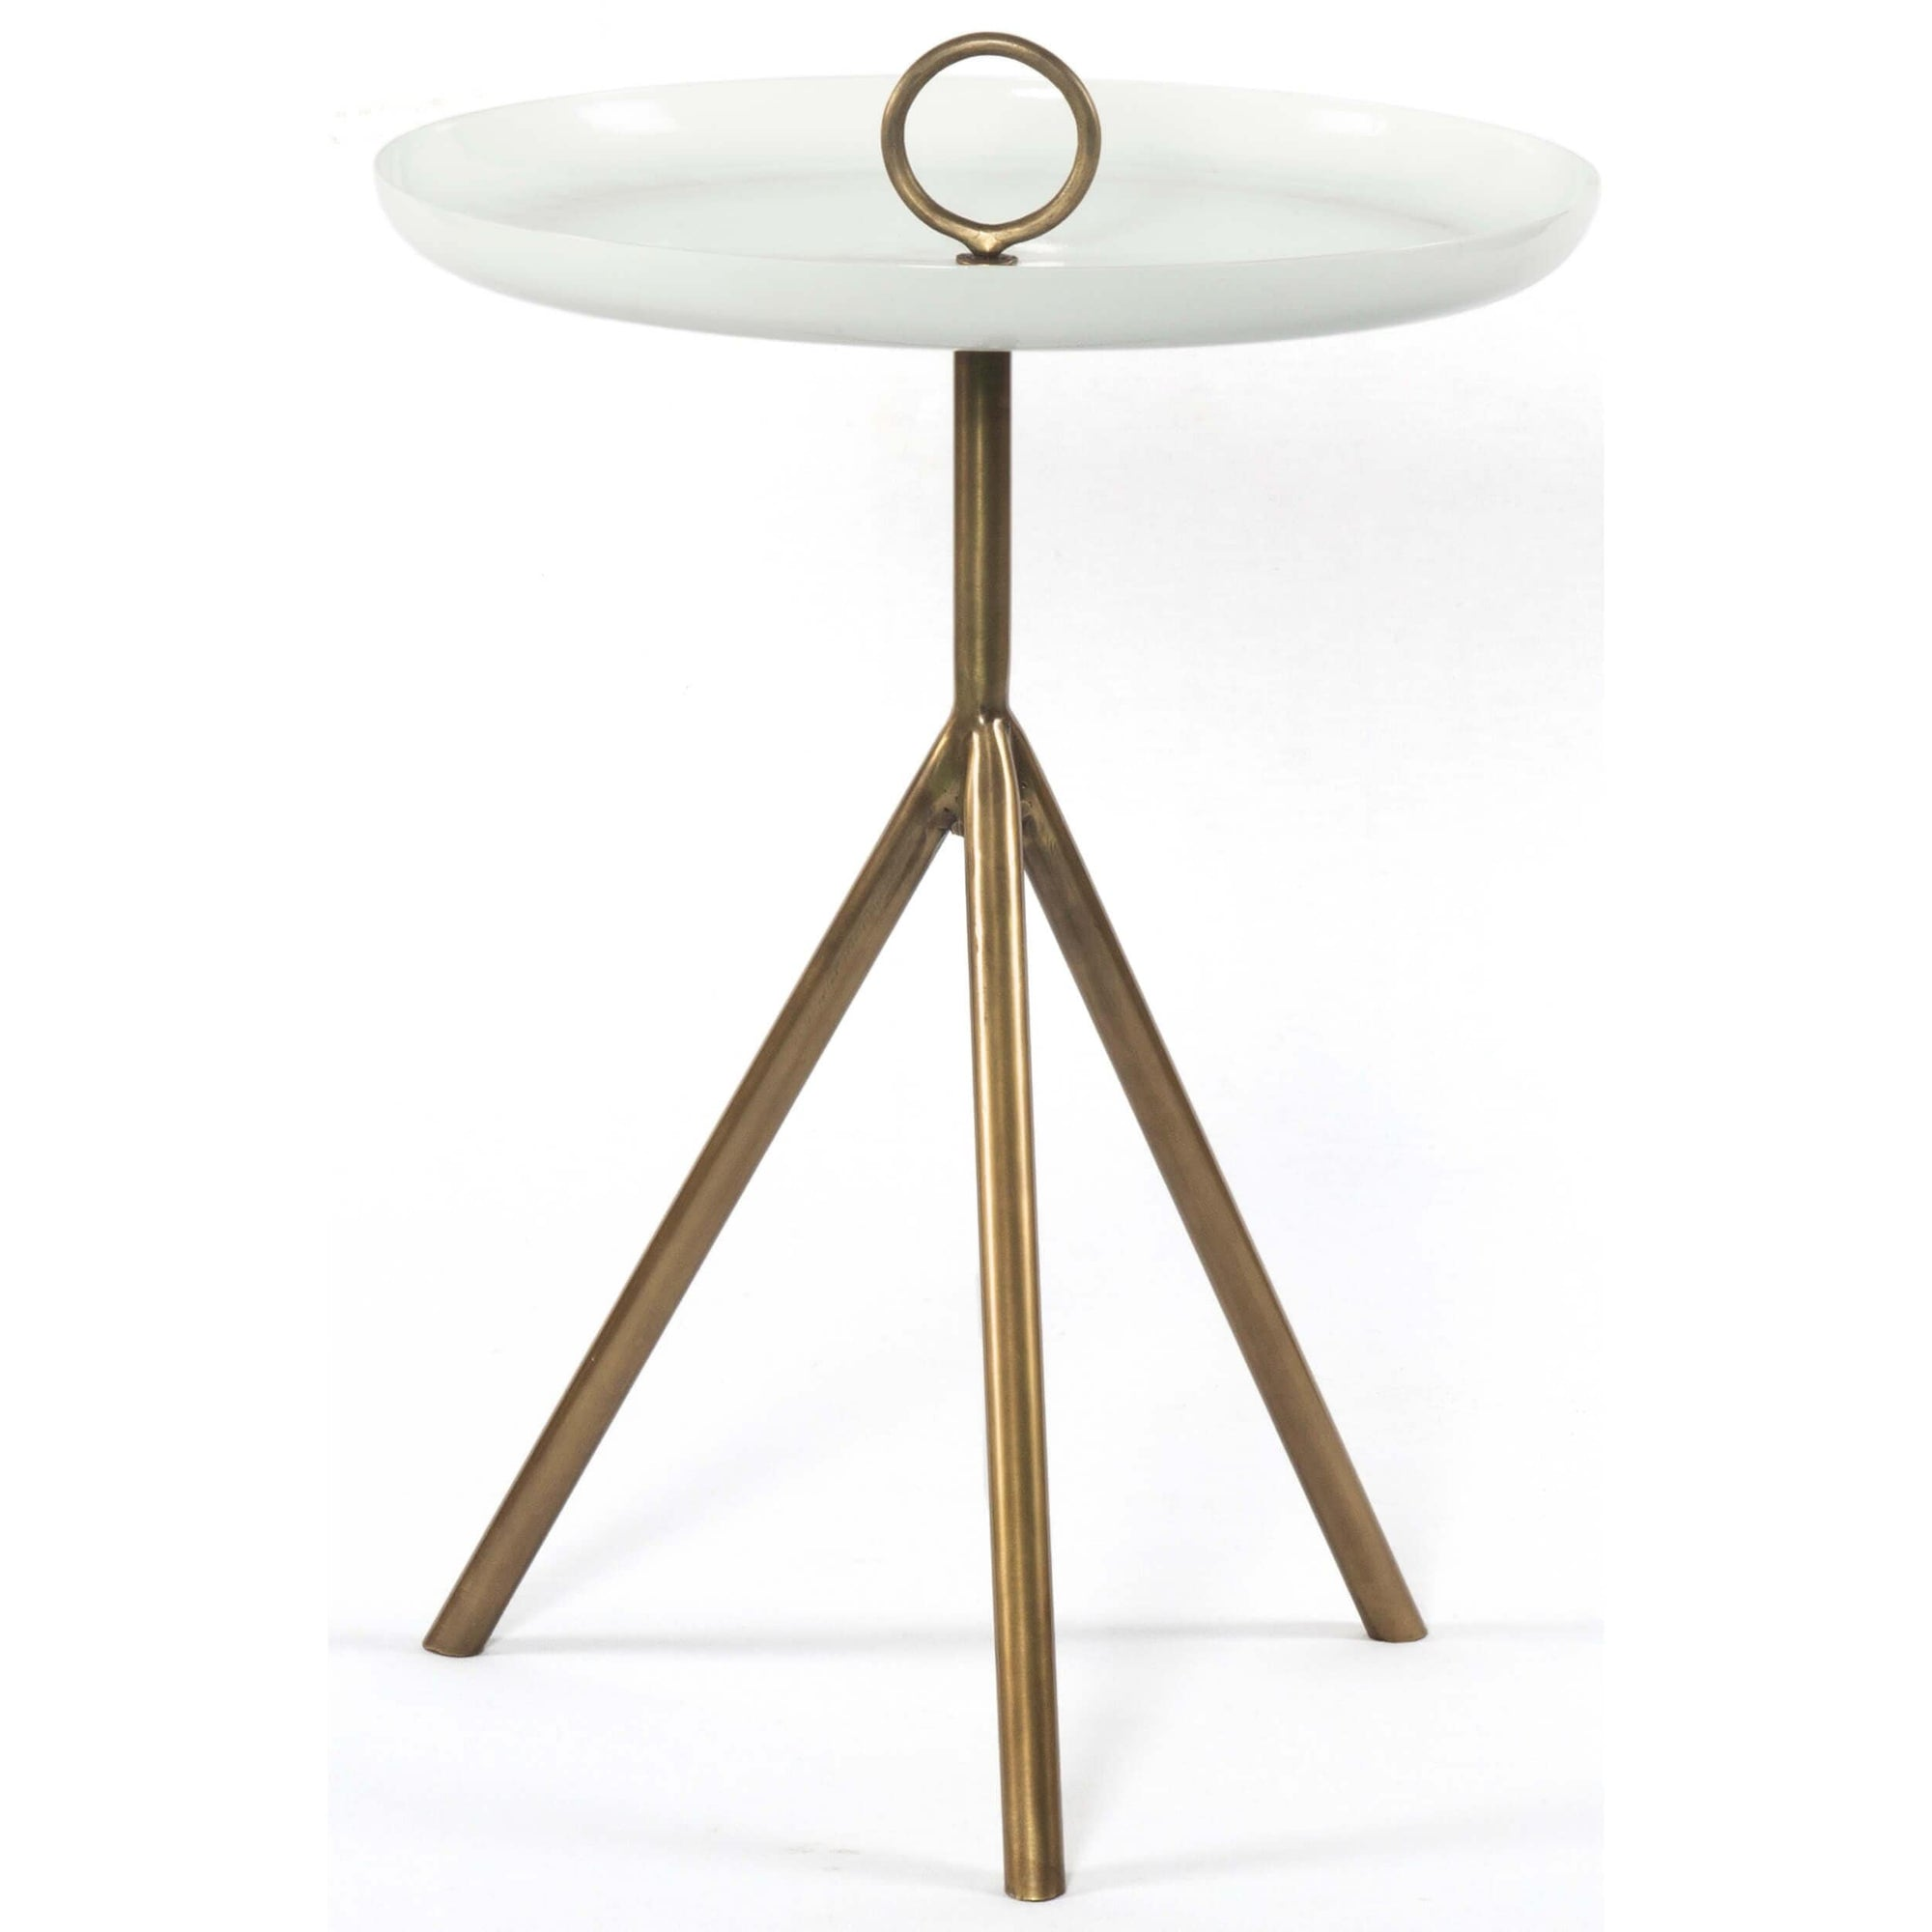 Alora End Table, Antique Brass – High Fashion Home